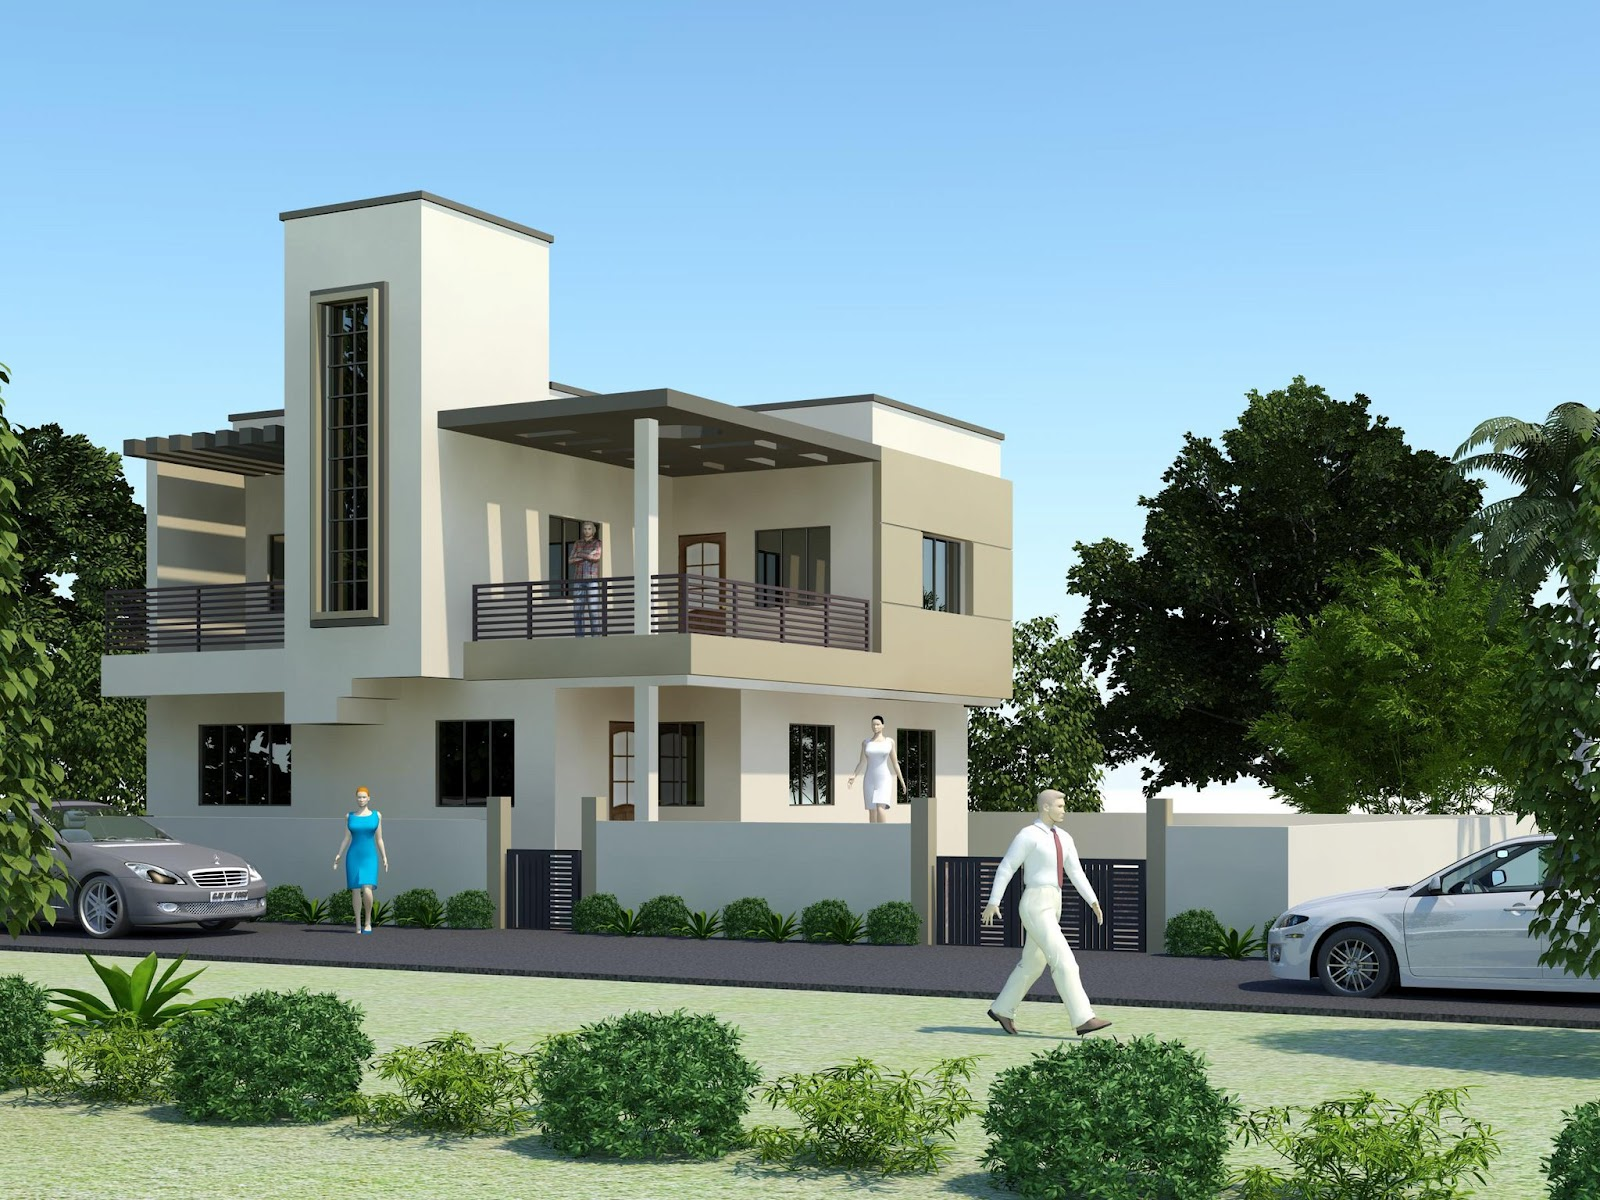 New home designs latest modern homes exterior designs for Front design of small house